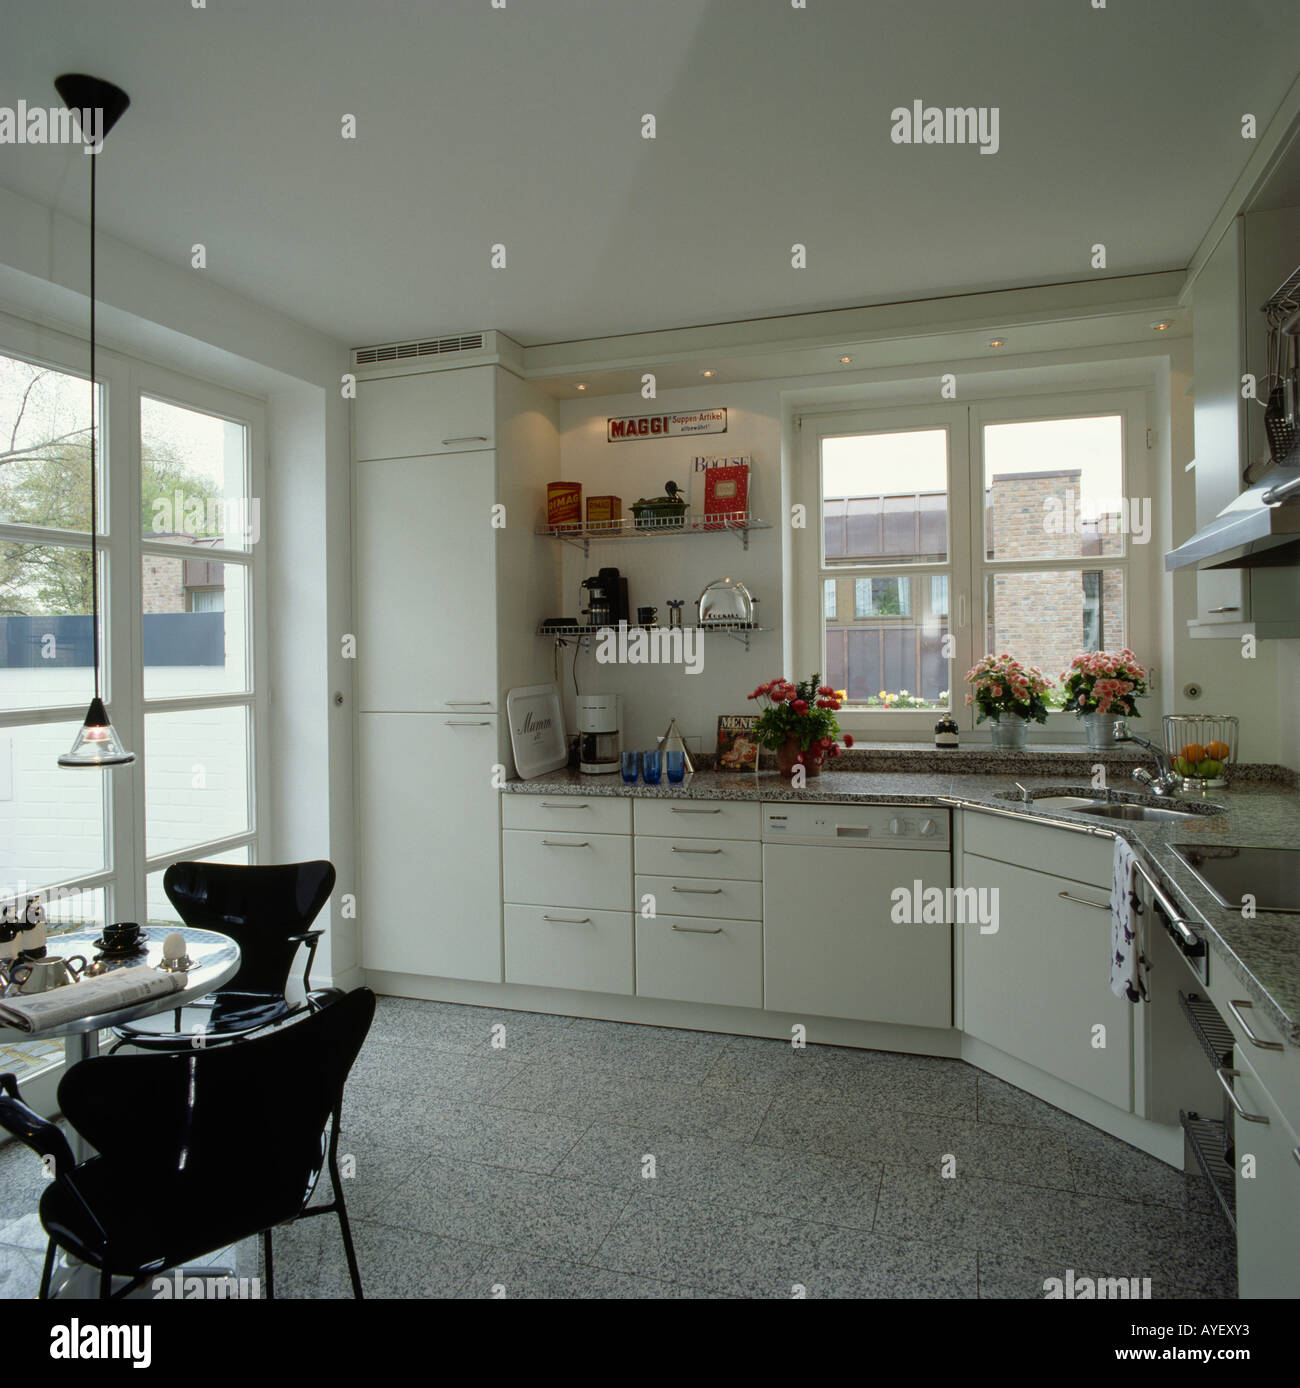 Diningrooms Interiors Kitchens Modern Stockfotos & Diningrooms ...